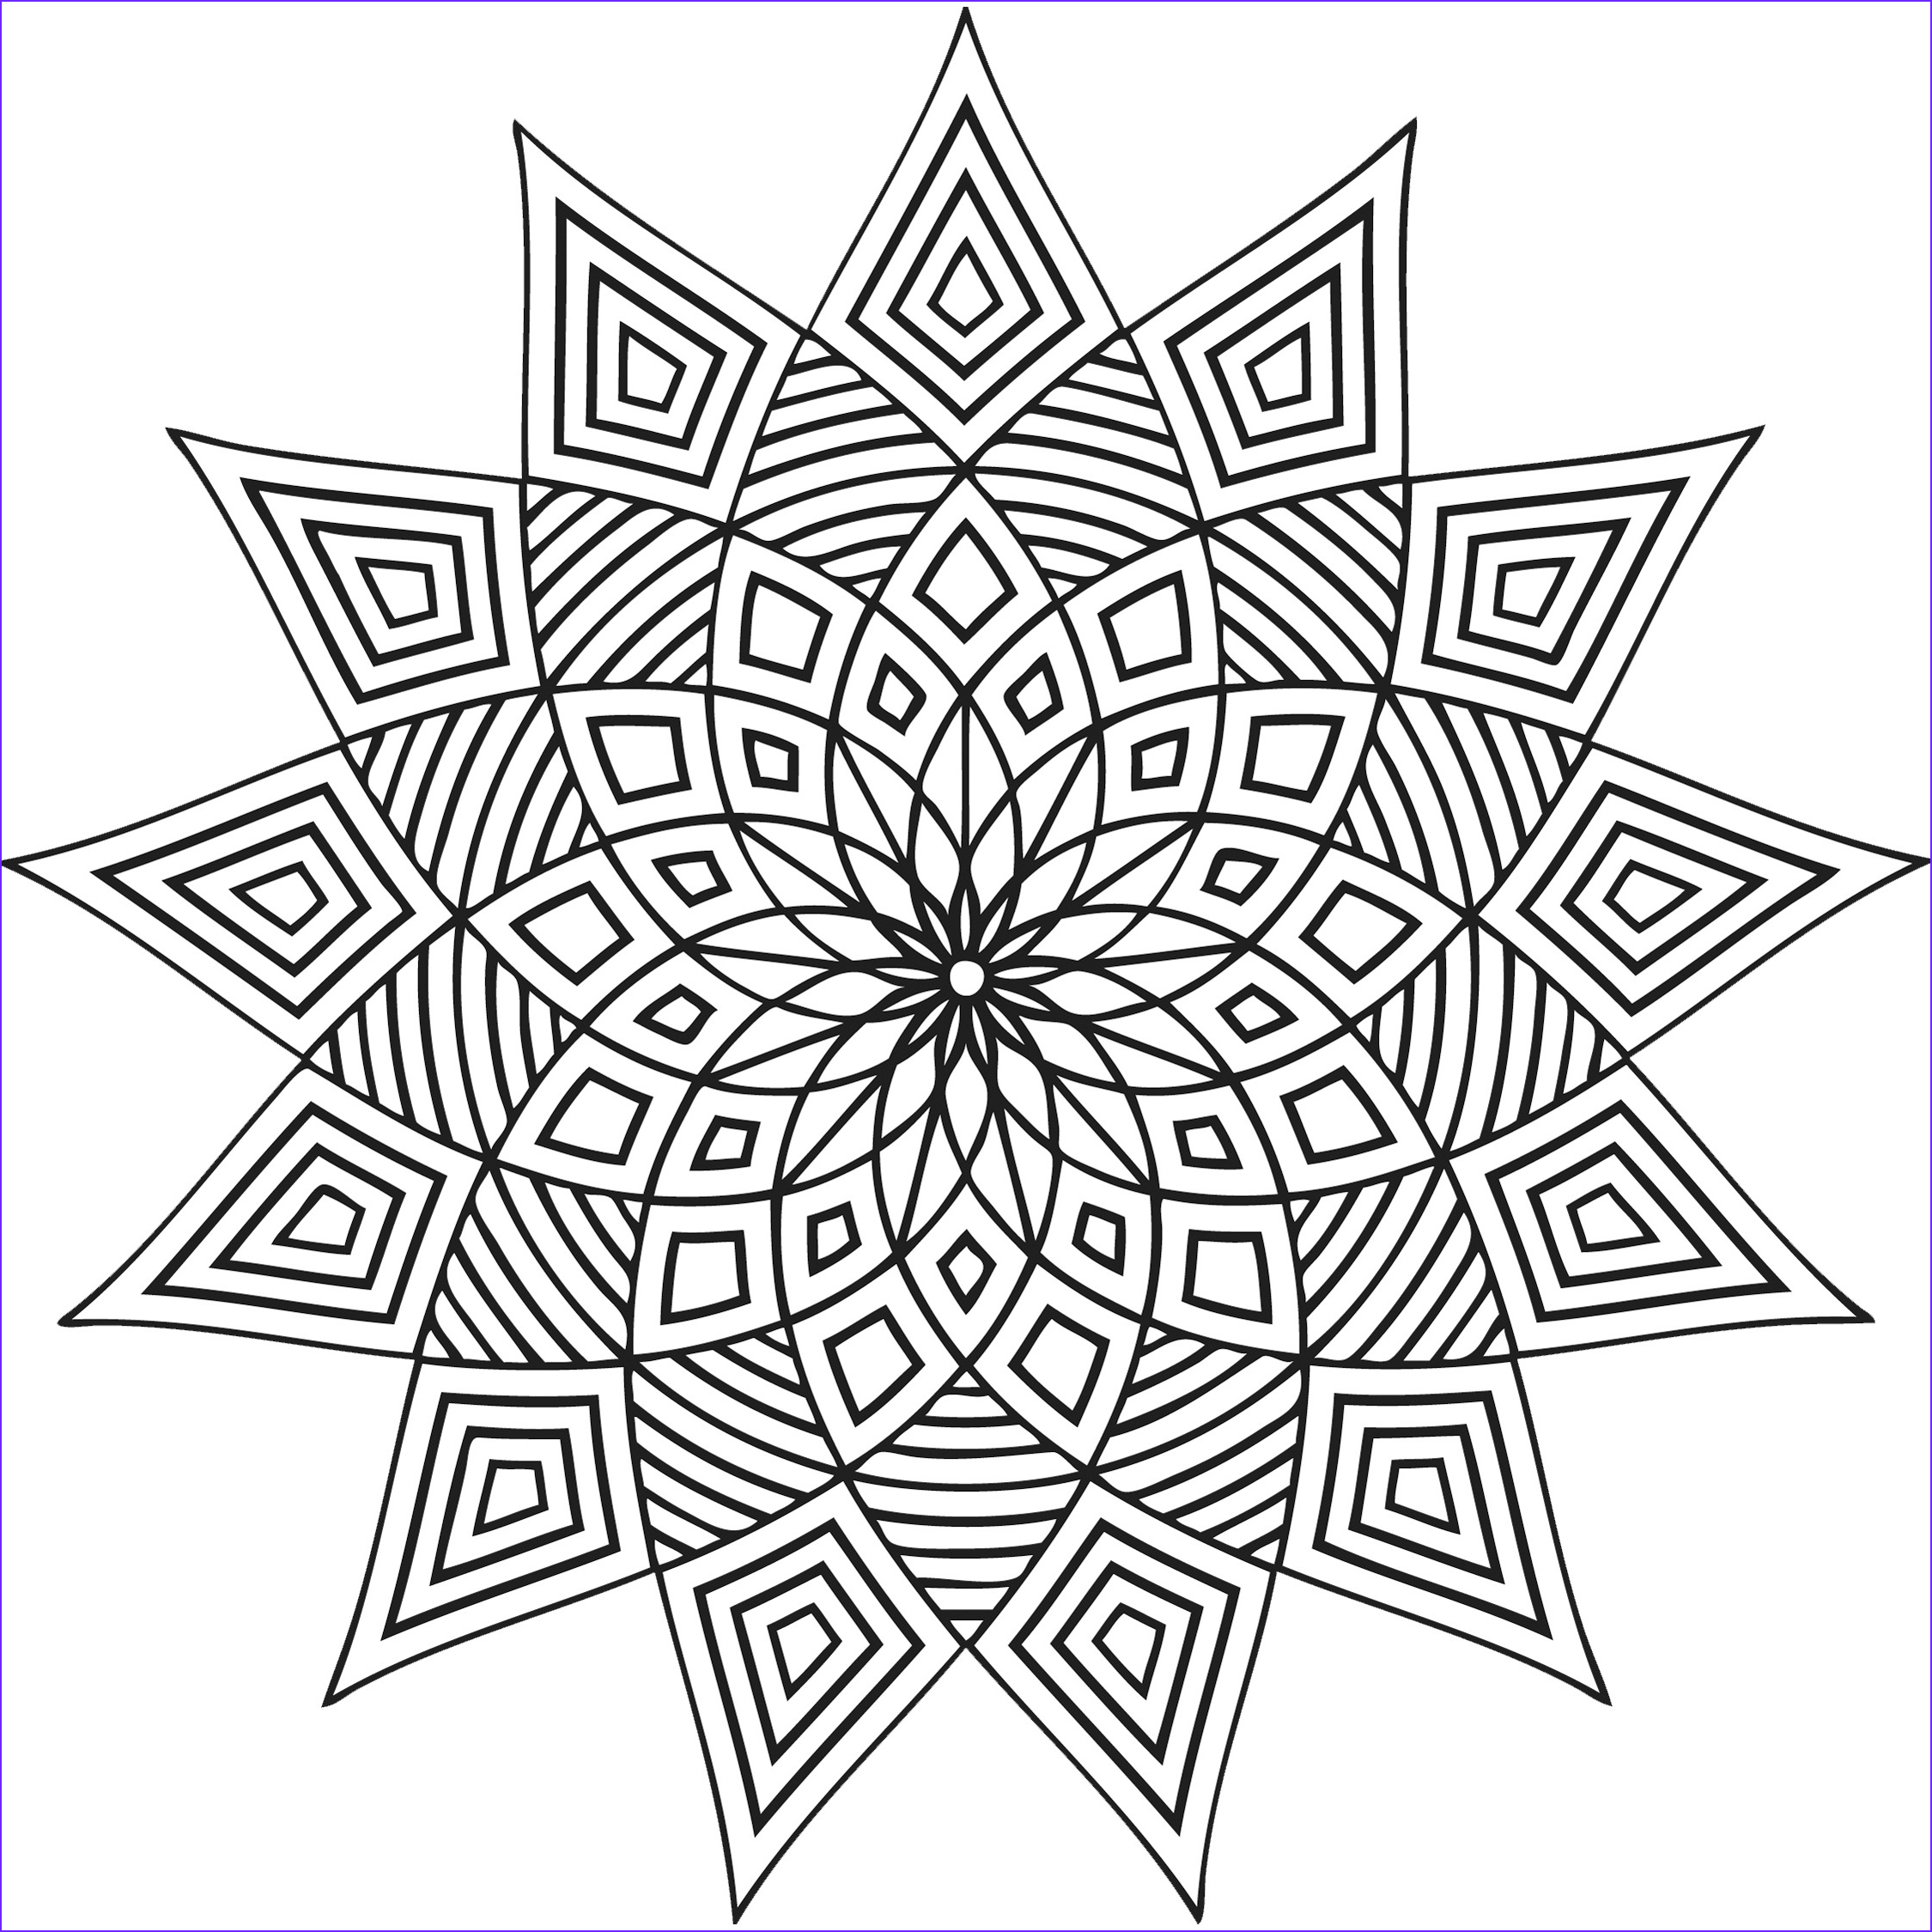 Adult Coloring Pages Easy Luxury Images Free Printable Geometric Coloring Pages for Kids